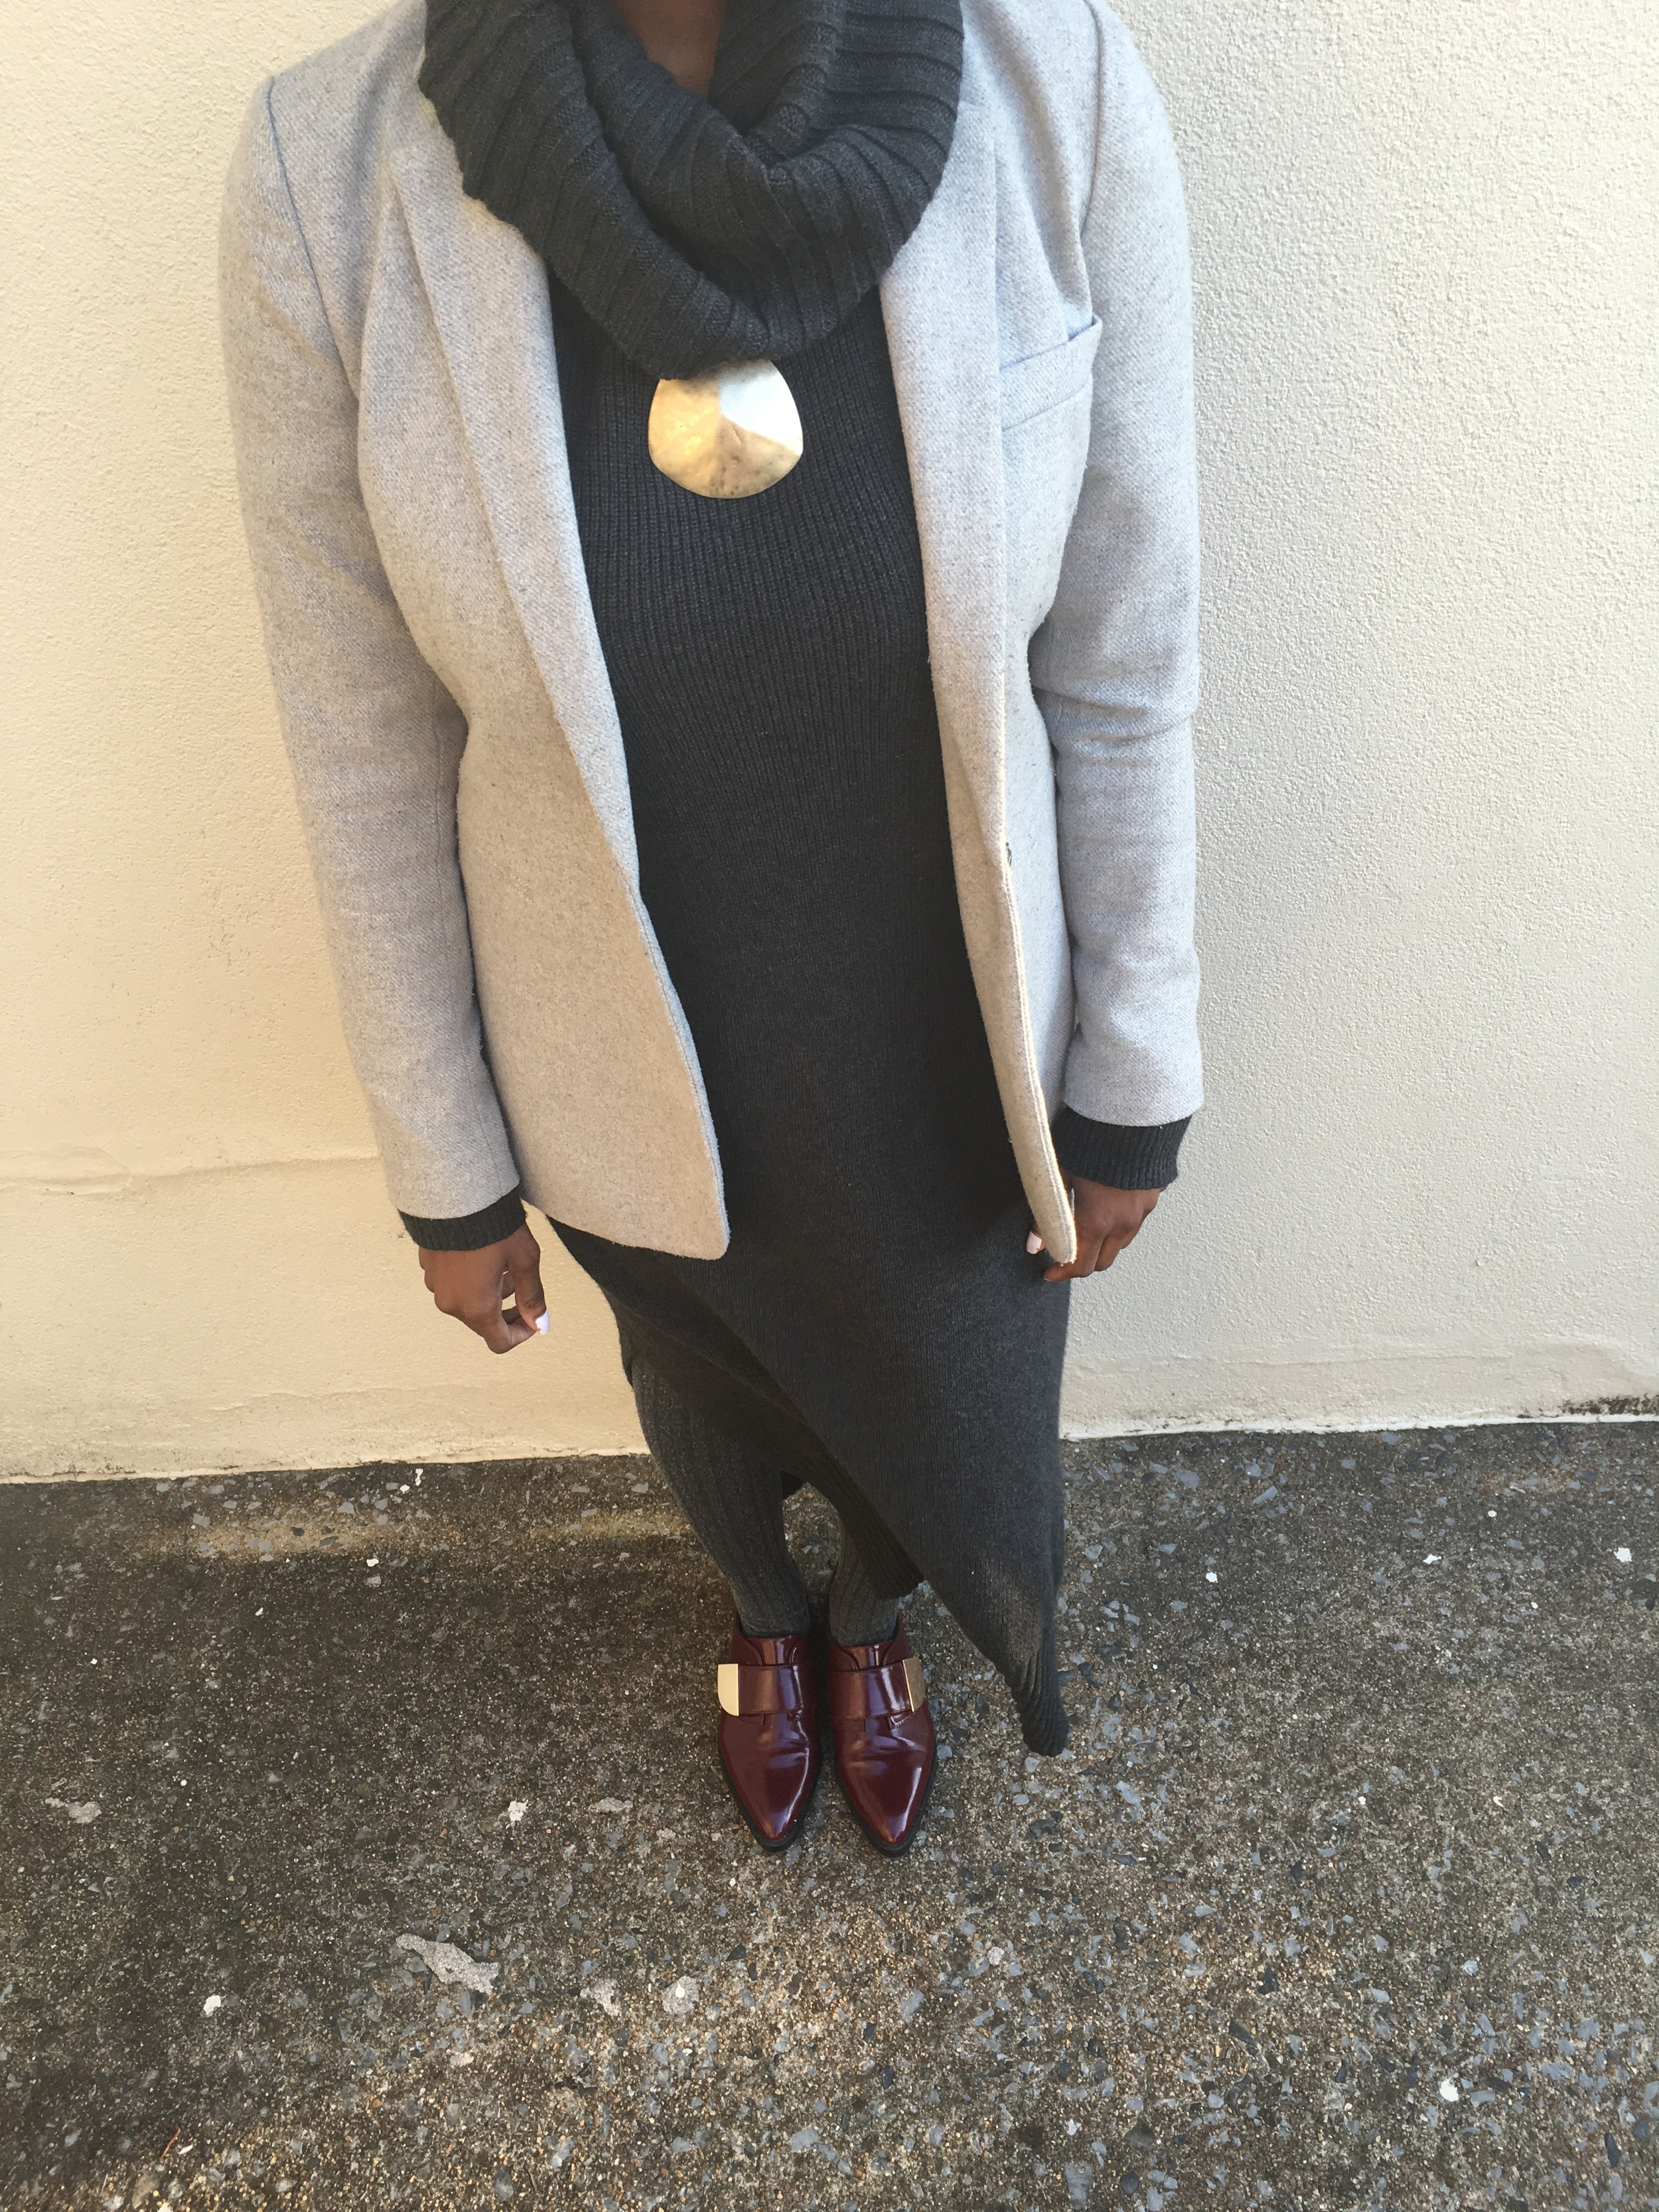 outfit deets - maxi dress: gifted c/o H&M ( here ) ; shoes: Aldo ( here ) ; blazer: Banana Republic ( here ) ; necklace: thrifted c/o Goodwill ( here )